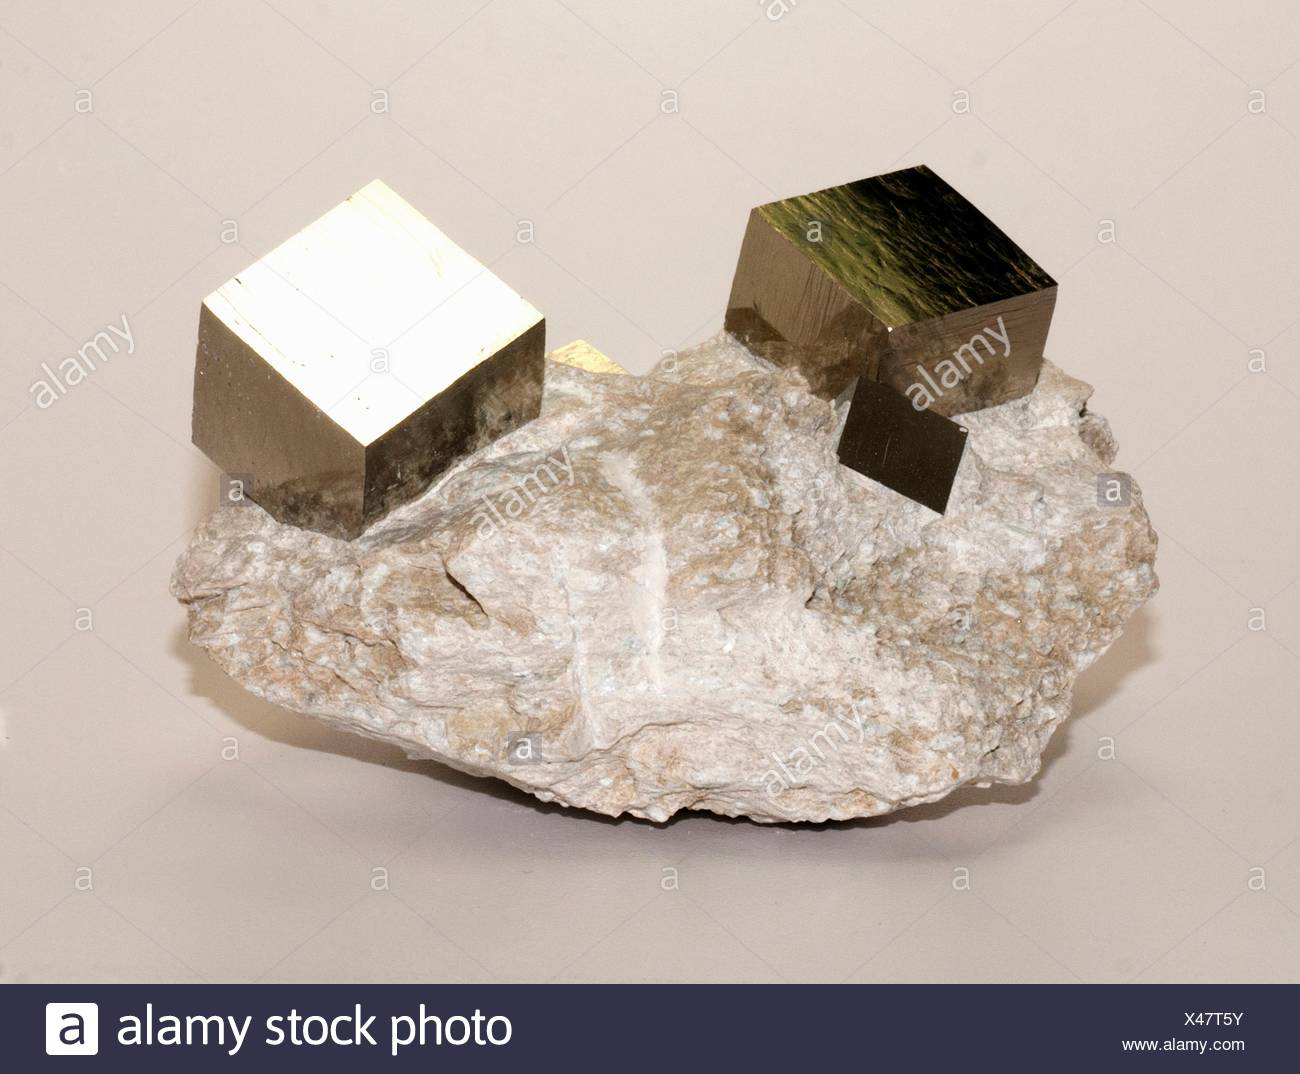 Pick Your Own Spain High Grade Iron Pyrite Cubes Mineral Crystals